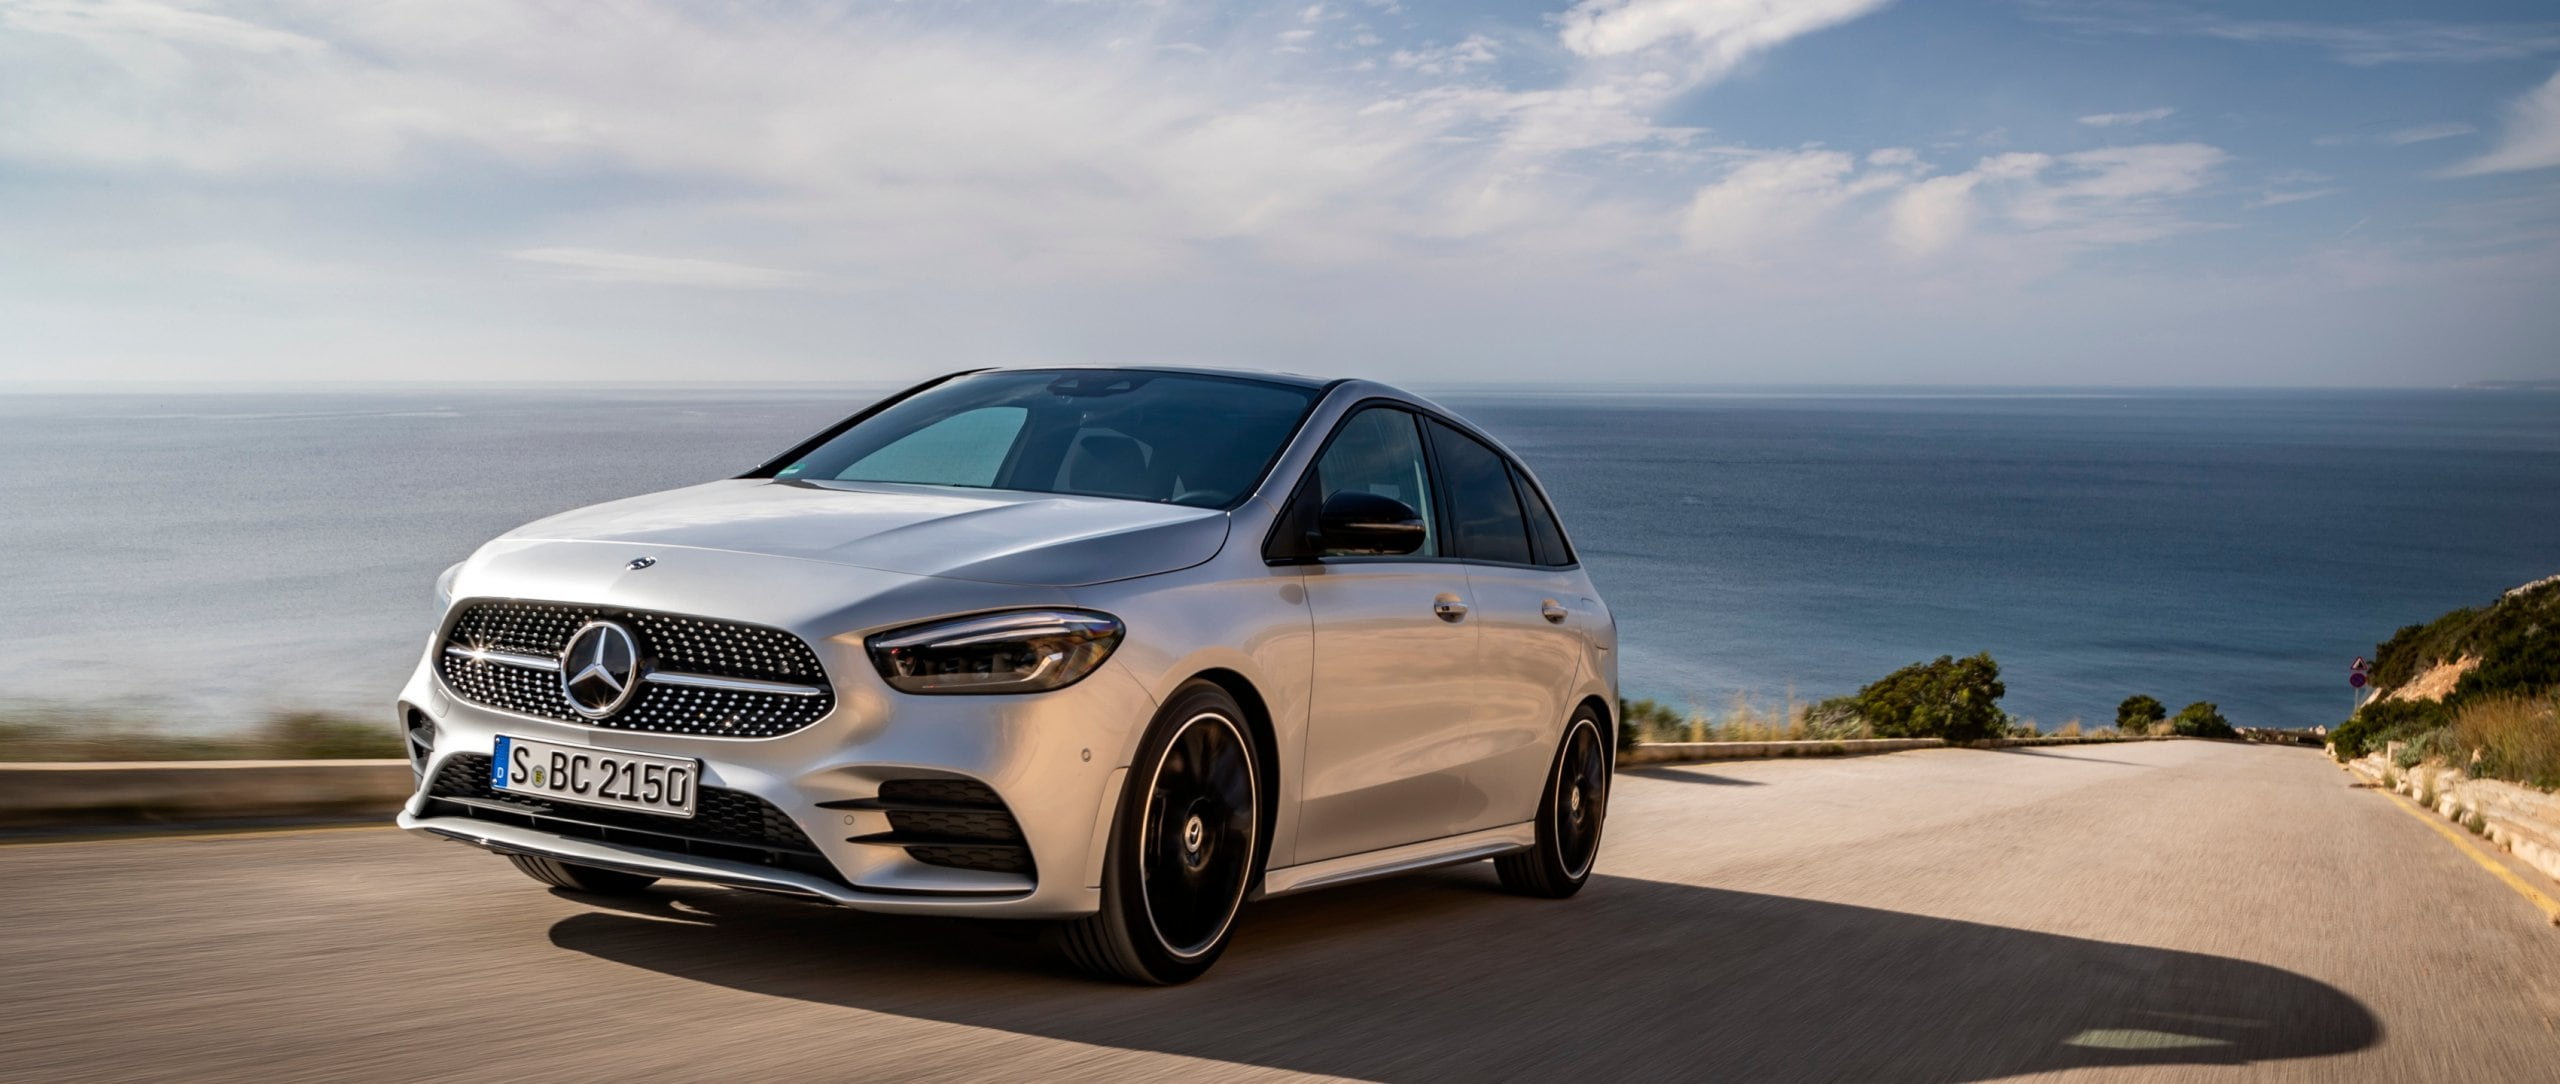 The new 2019 Mercedes-Benz B-Class (W 247) in iridium silver – test driven by YouTuber Jessica Chou.